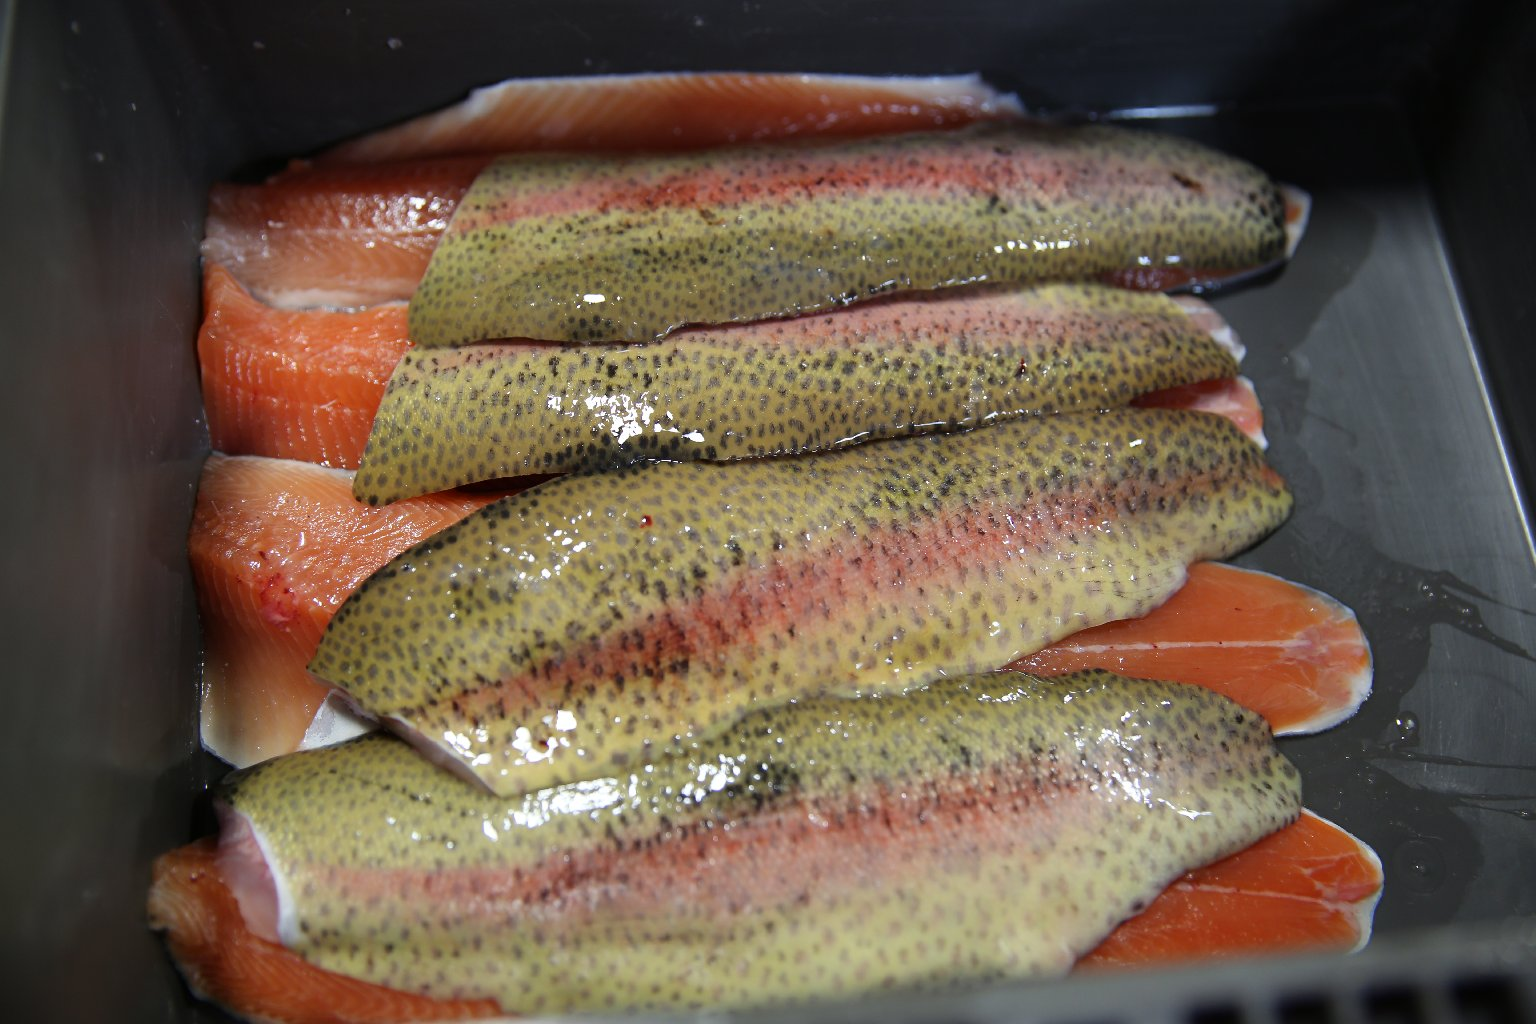 Fillets of TwoXsea's rainbow trout ready for San Francisco restaurants and grocery stores. Lindsey Hoshaw/QUEST.